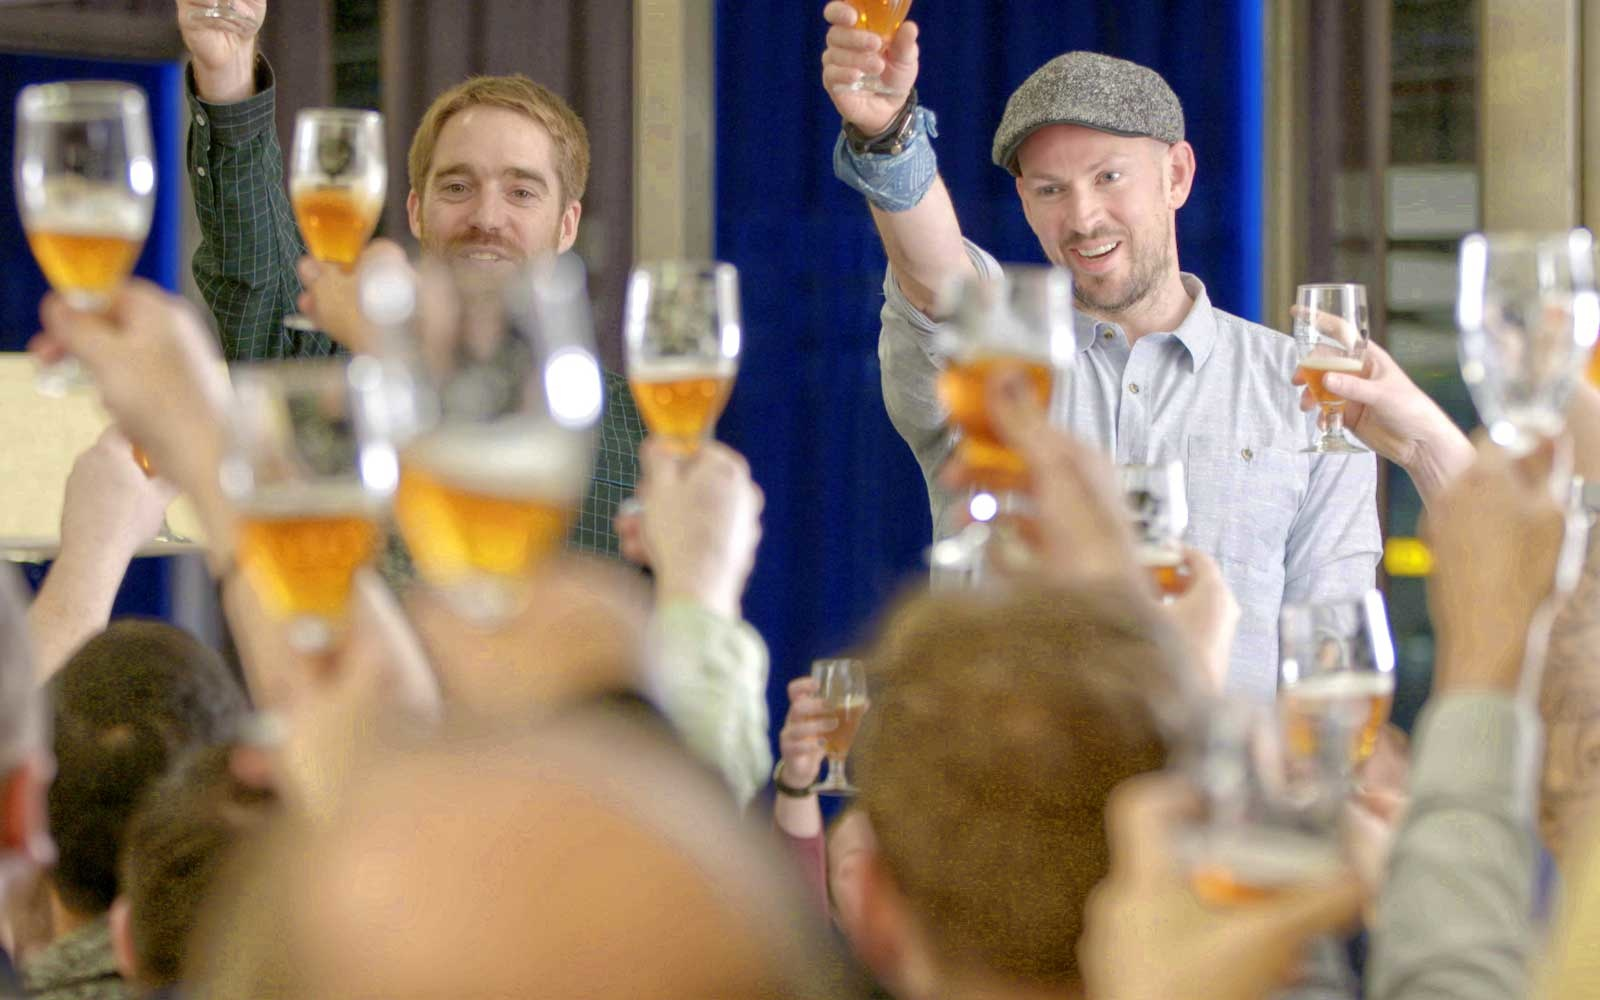 Passengers on British Airways Can Soon Order the World's First Beer Brewed at 40,000 Feet